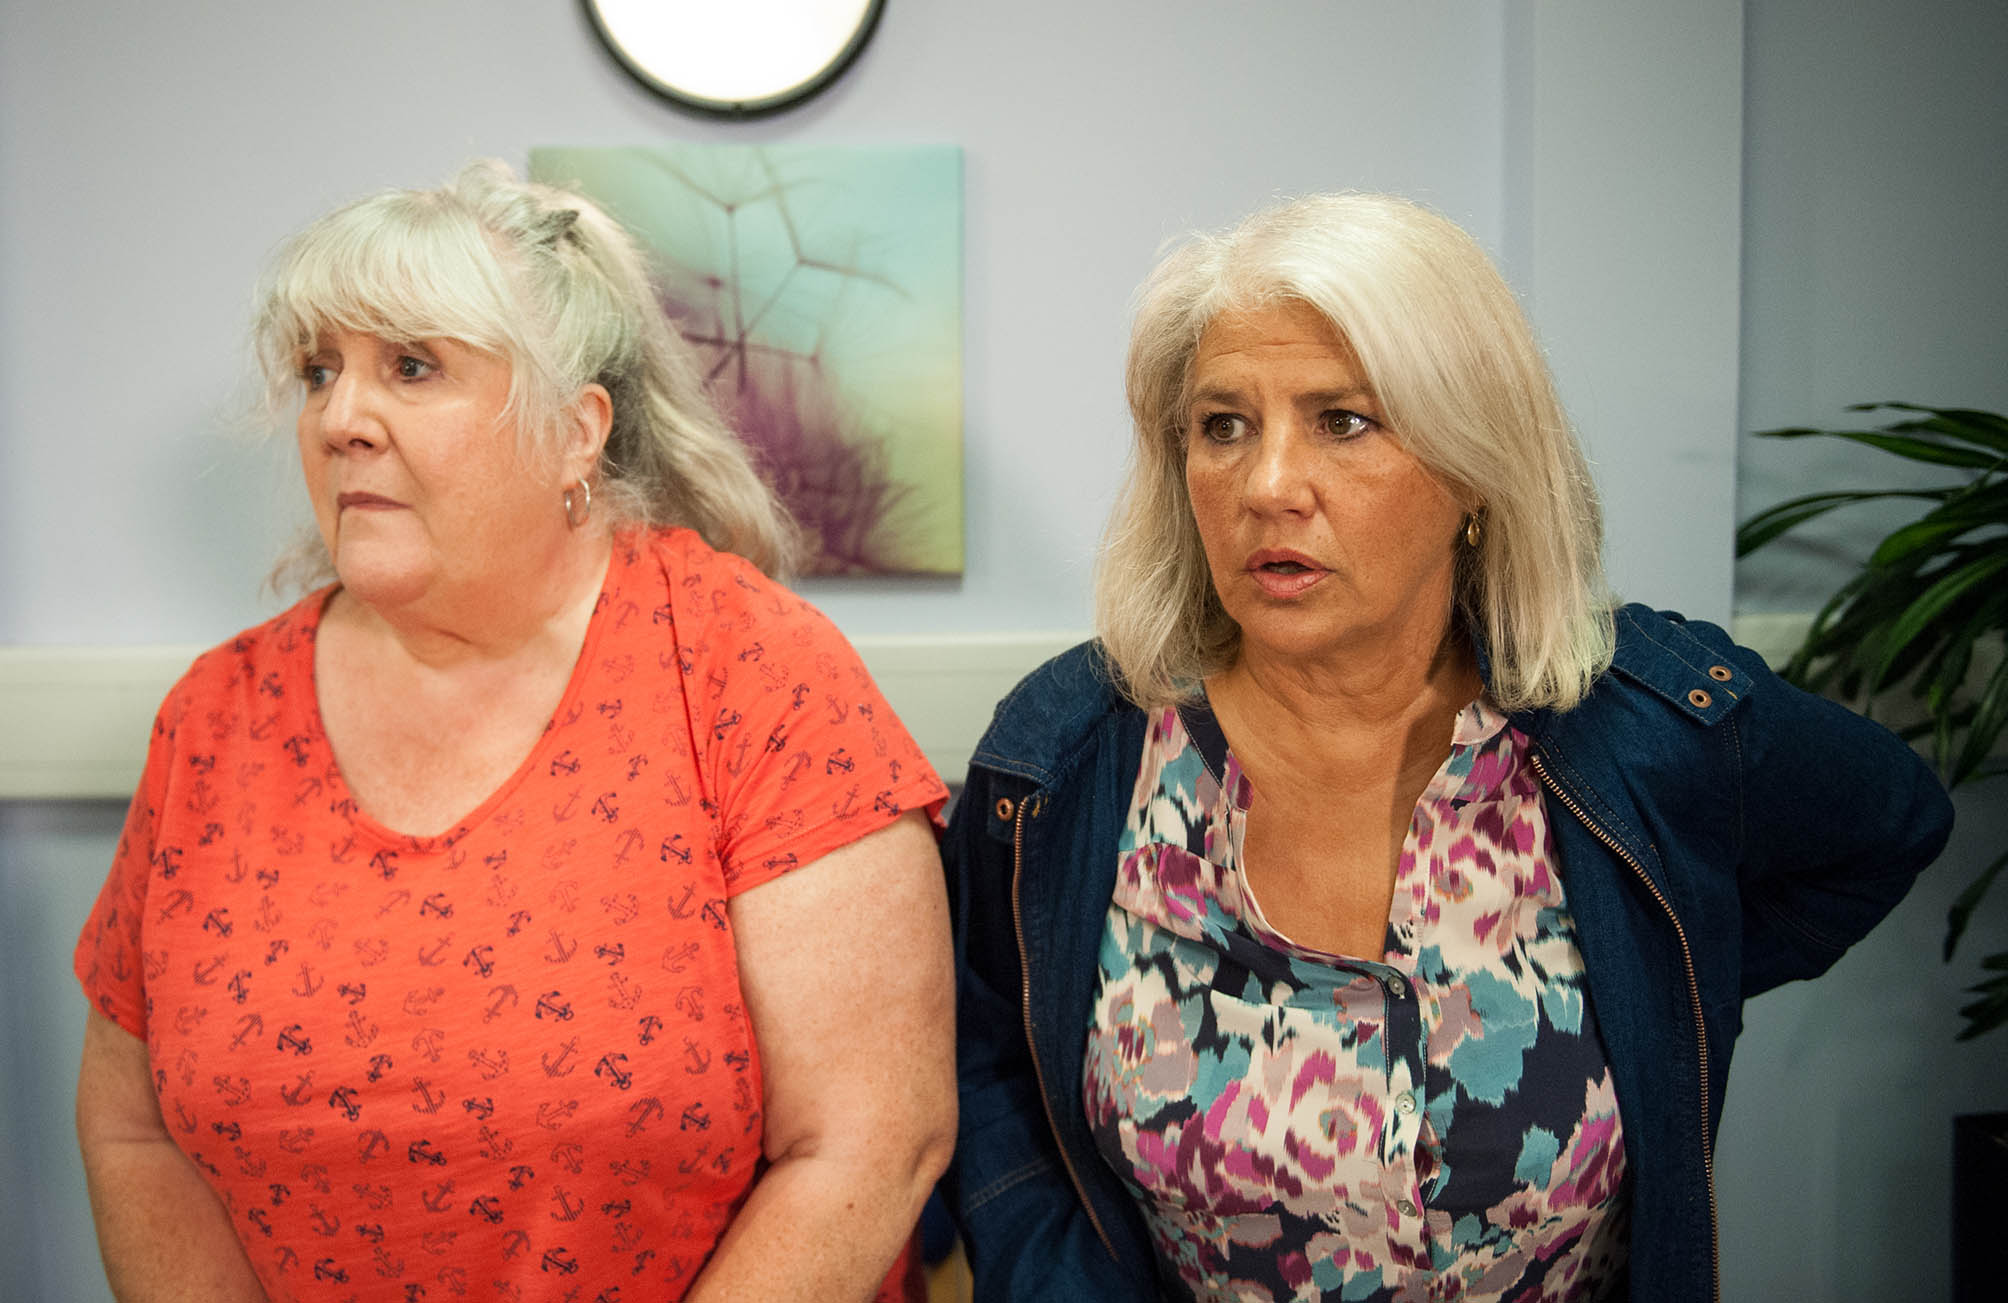 FROM ITV STRICT EMBARGO - NO USE BEFORE TUESDAY 2 AUGUST 2016 Emmerdale - Ep 7582 Wednesday 10 August 2016 Joanier which alters the visual appearance of the person photographed deemed detrimental or inappropriate by ITV plc Picture Desk. This photograph must not be syndicated to any other company, publication or website, or permanently archived, without the express written permission of ITV Plc Picture Desk. Full Terms and conditions are available on the website www.itvpictures.com